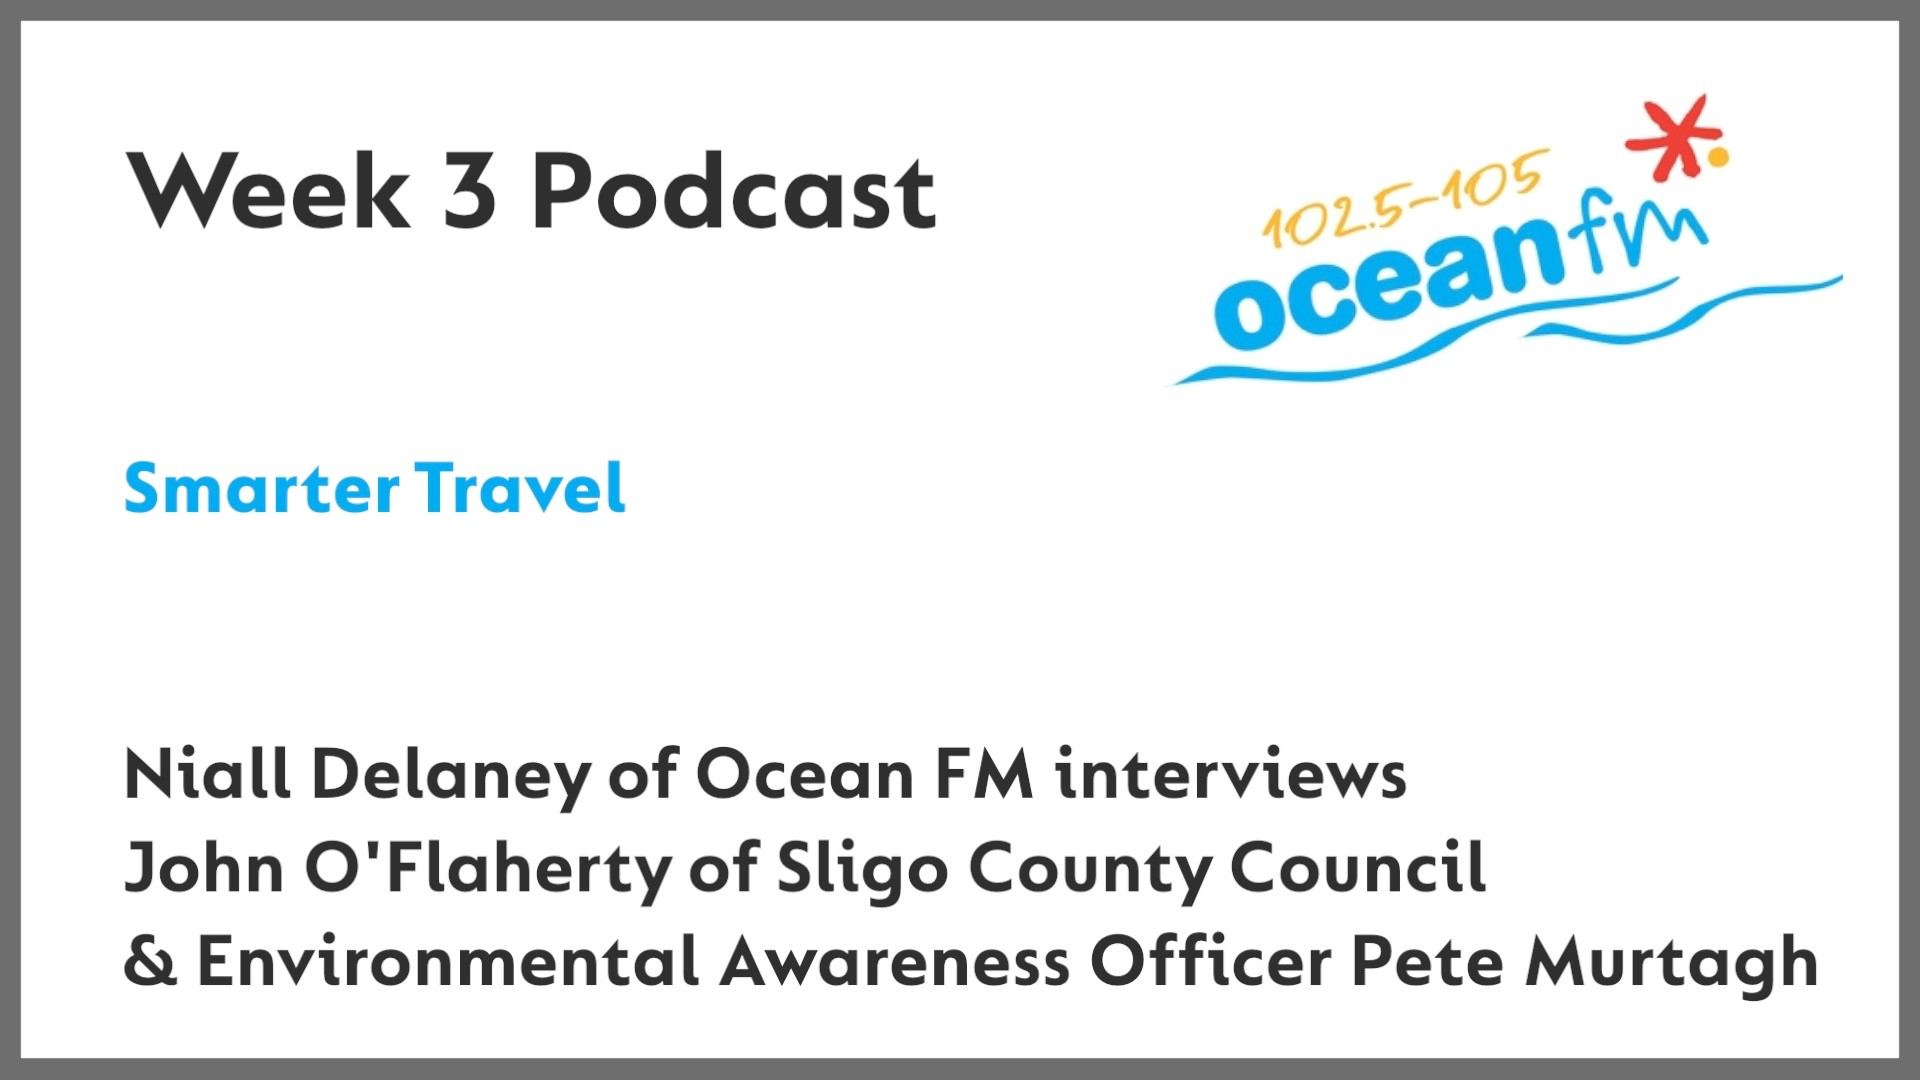 Smarter Travel interview on Ocean FM